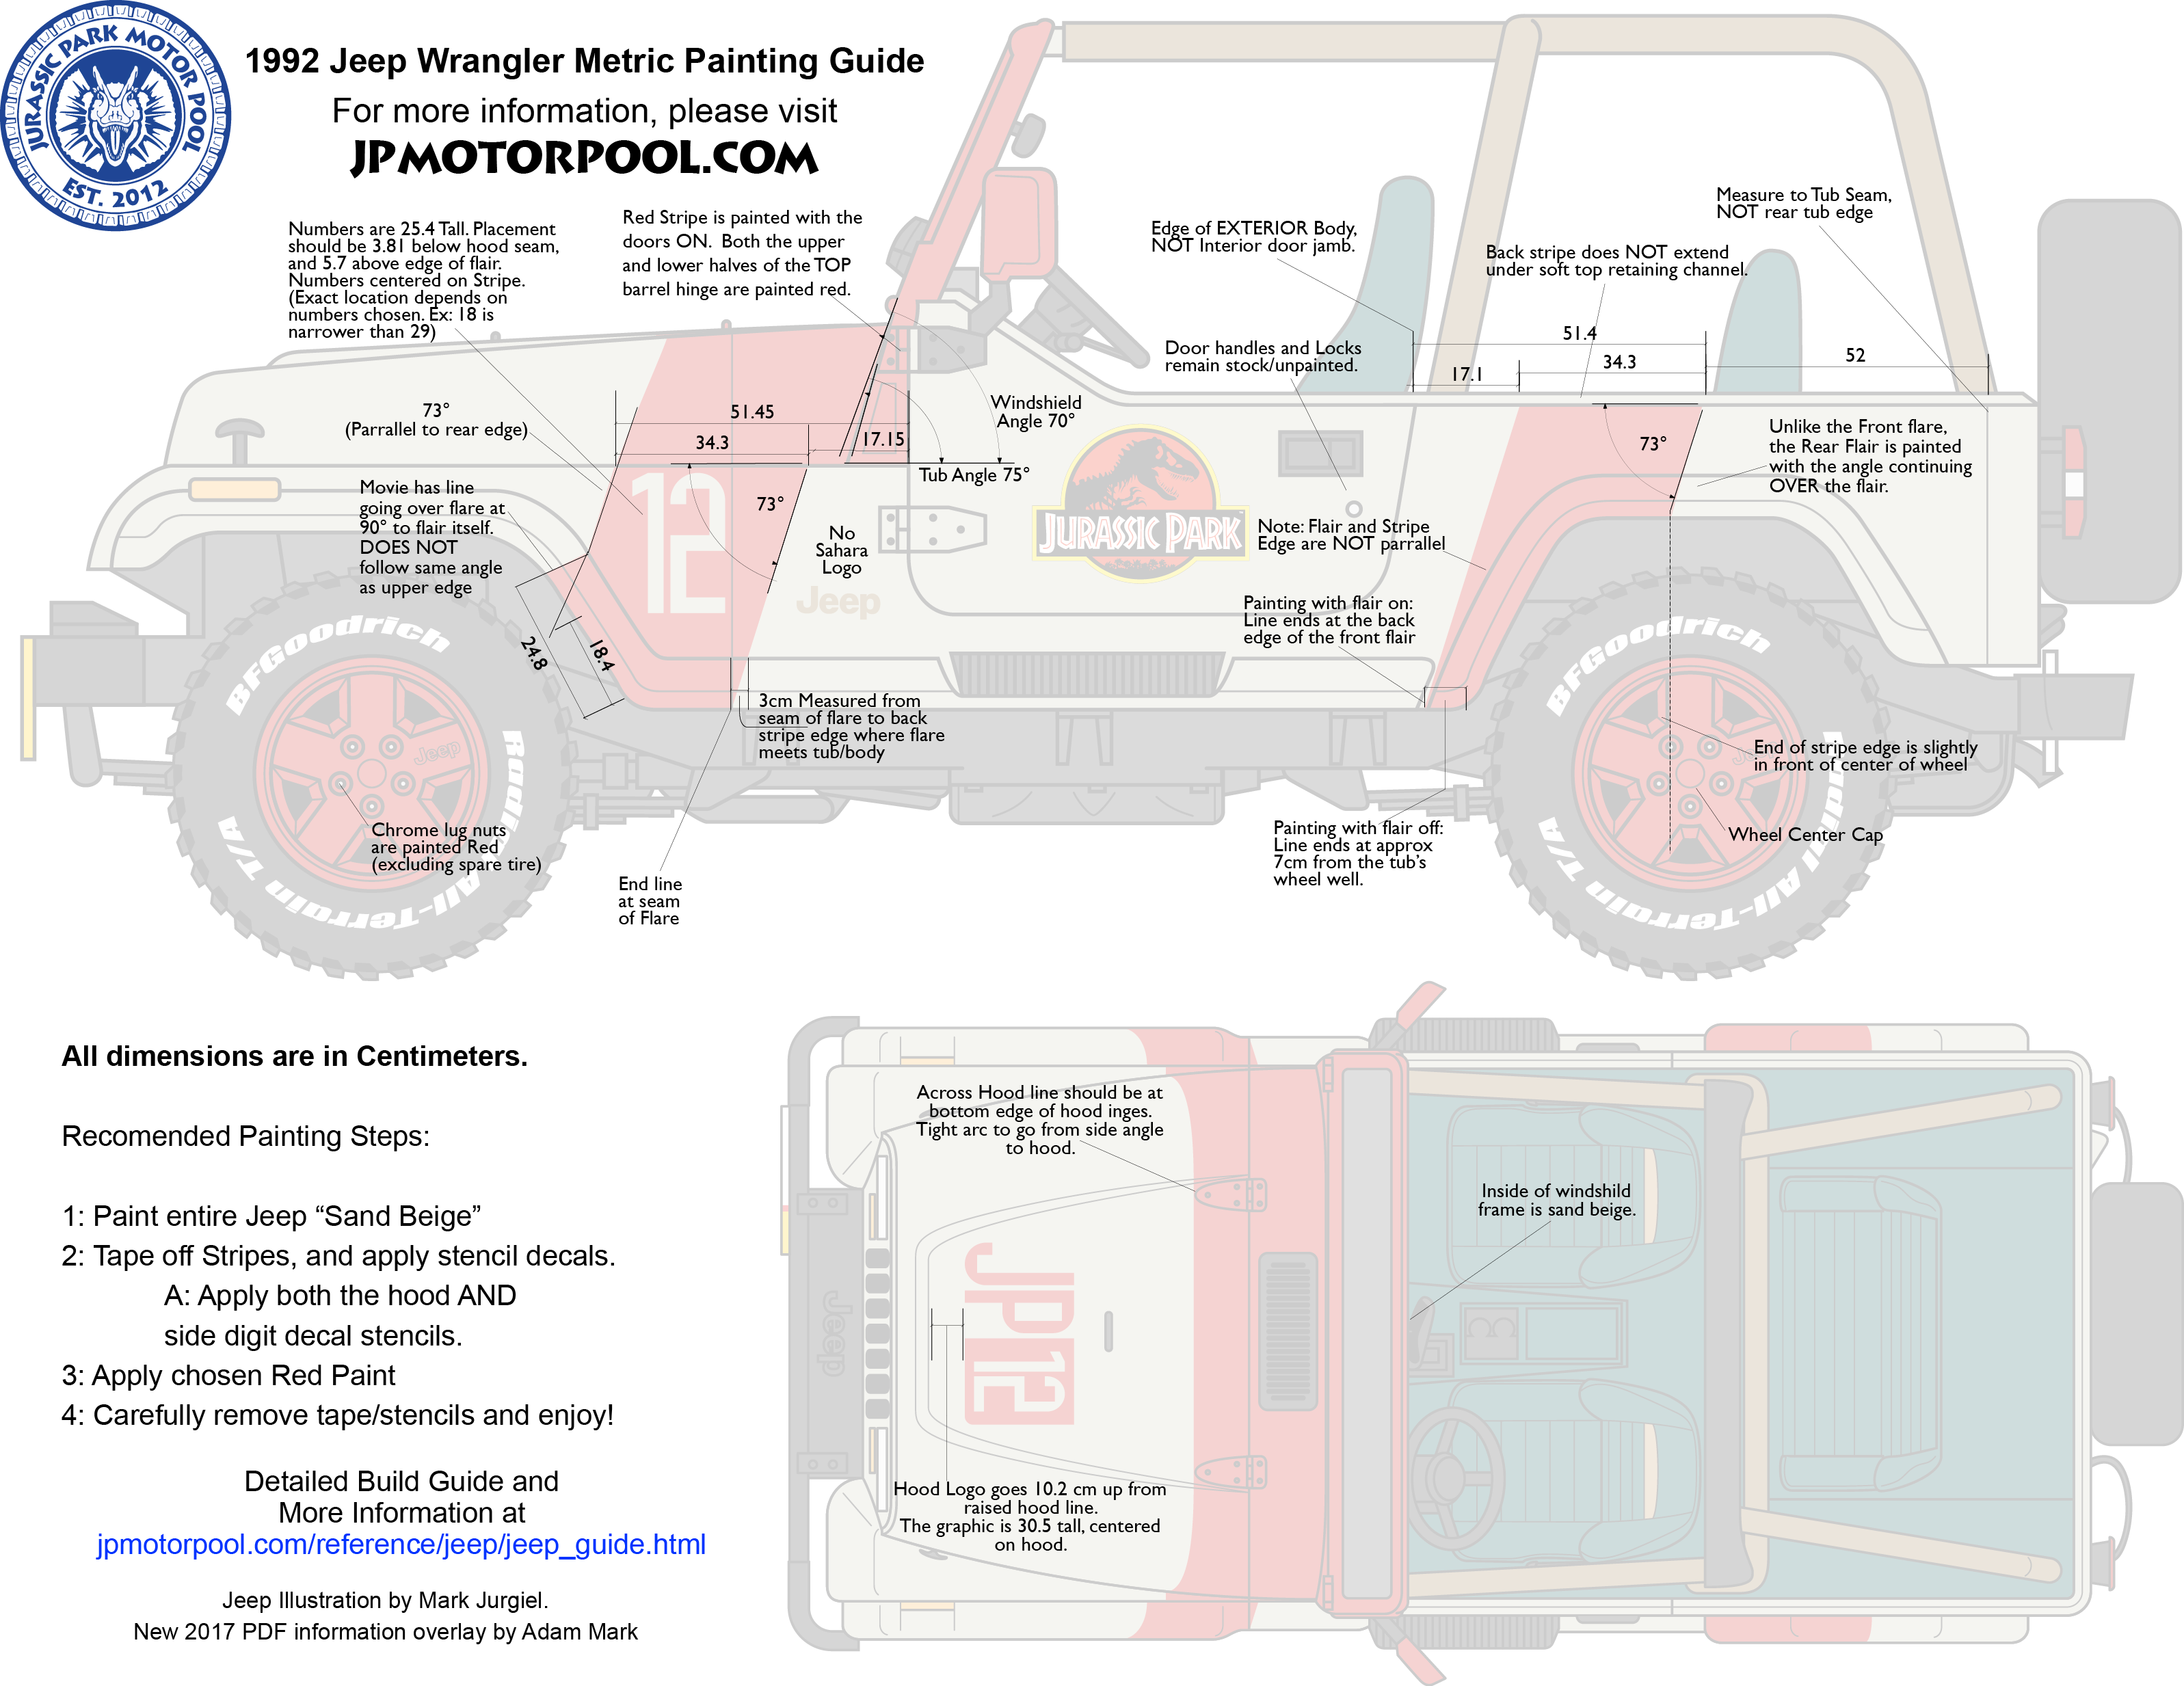 Reference Jeep Wrangler Guide Jurassic Park Motor Pool Yj Chassis Wiring Harness Diagram Download This